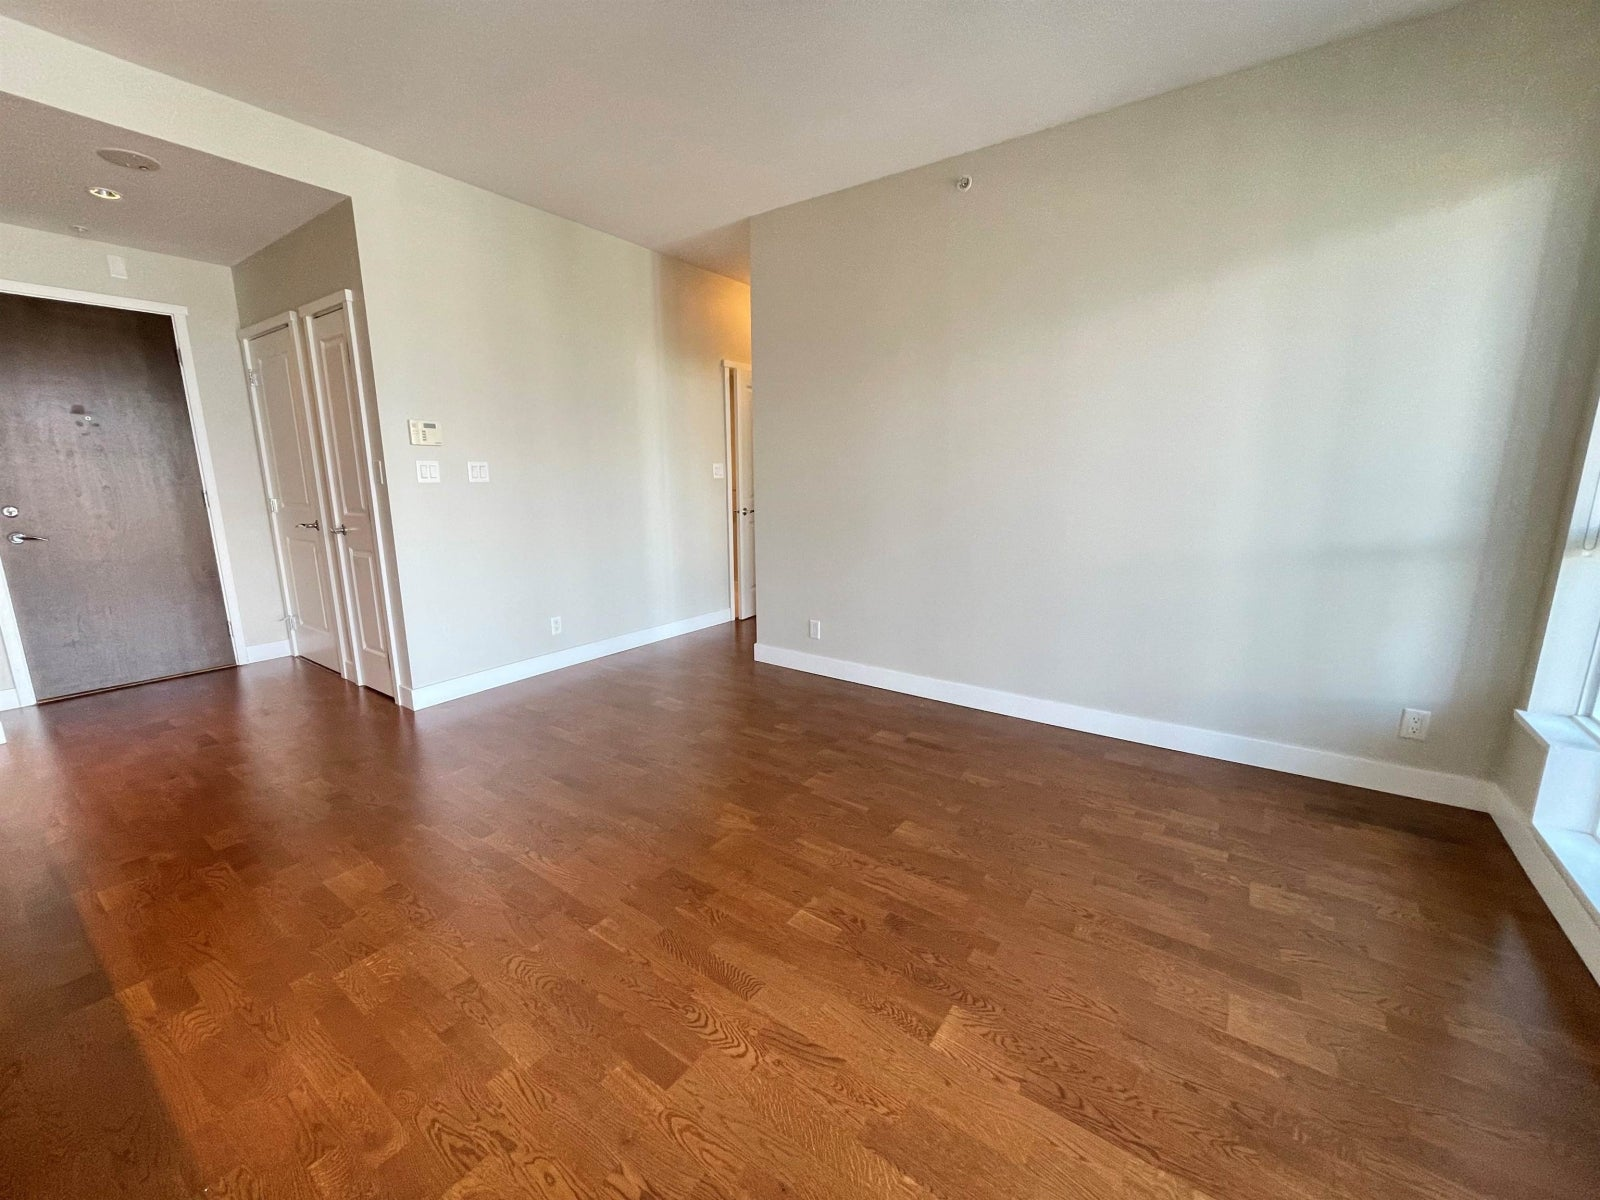 803 1333 W 11TH AVENUE - Fairview VW Apartment/Condo for sale, 2 Bedrooms (R2616288) #8